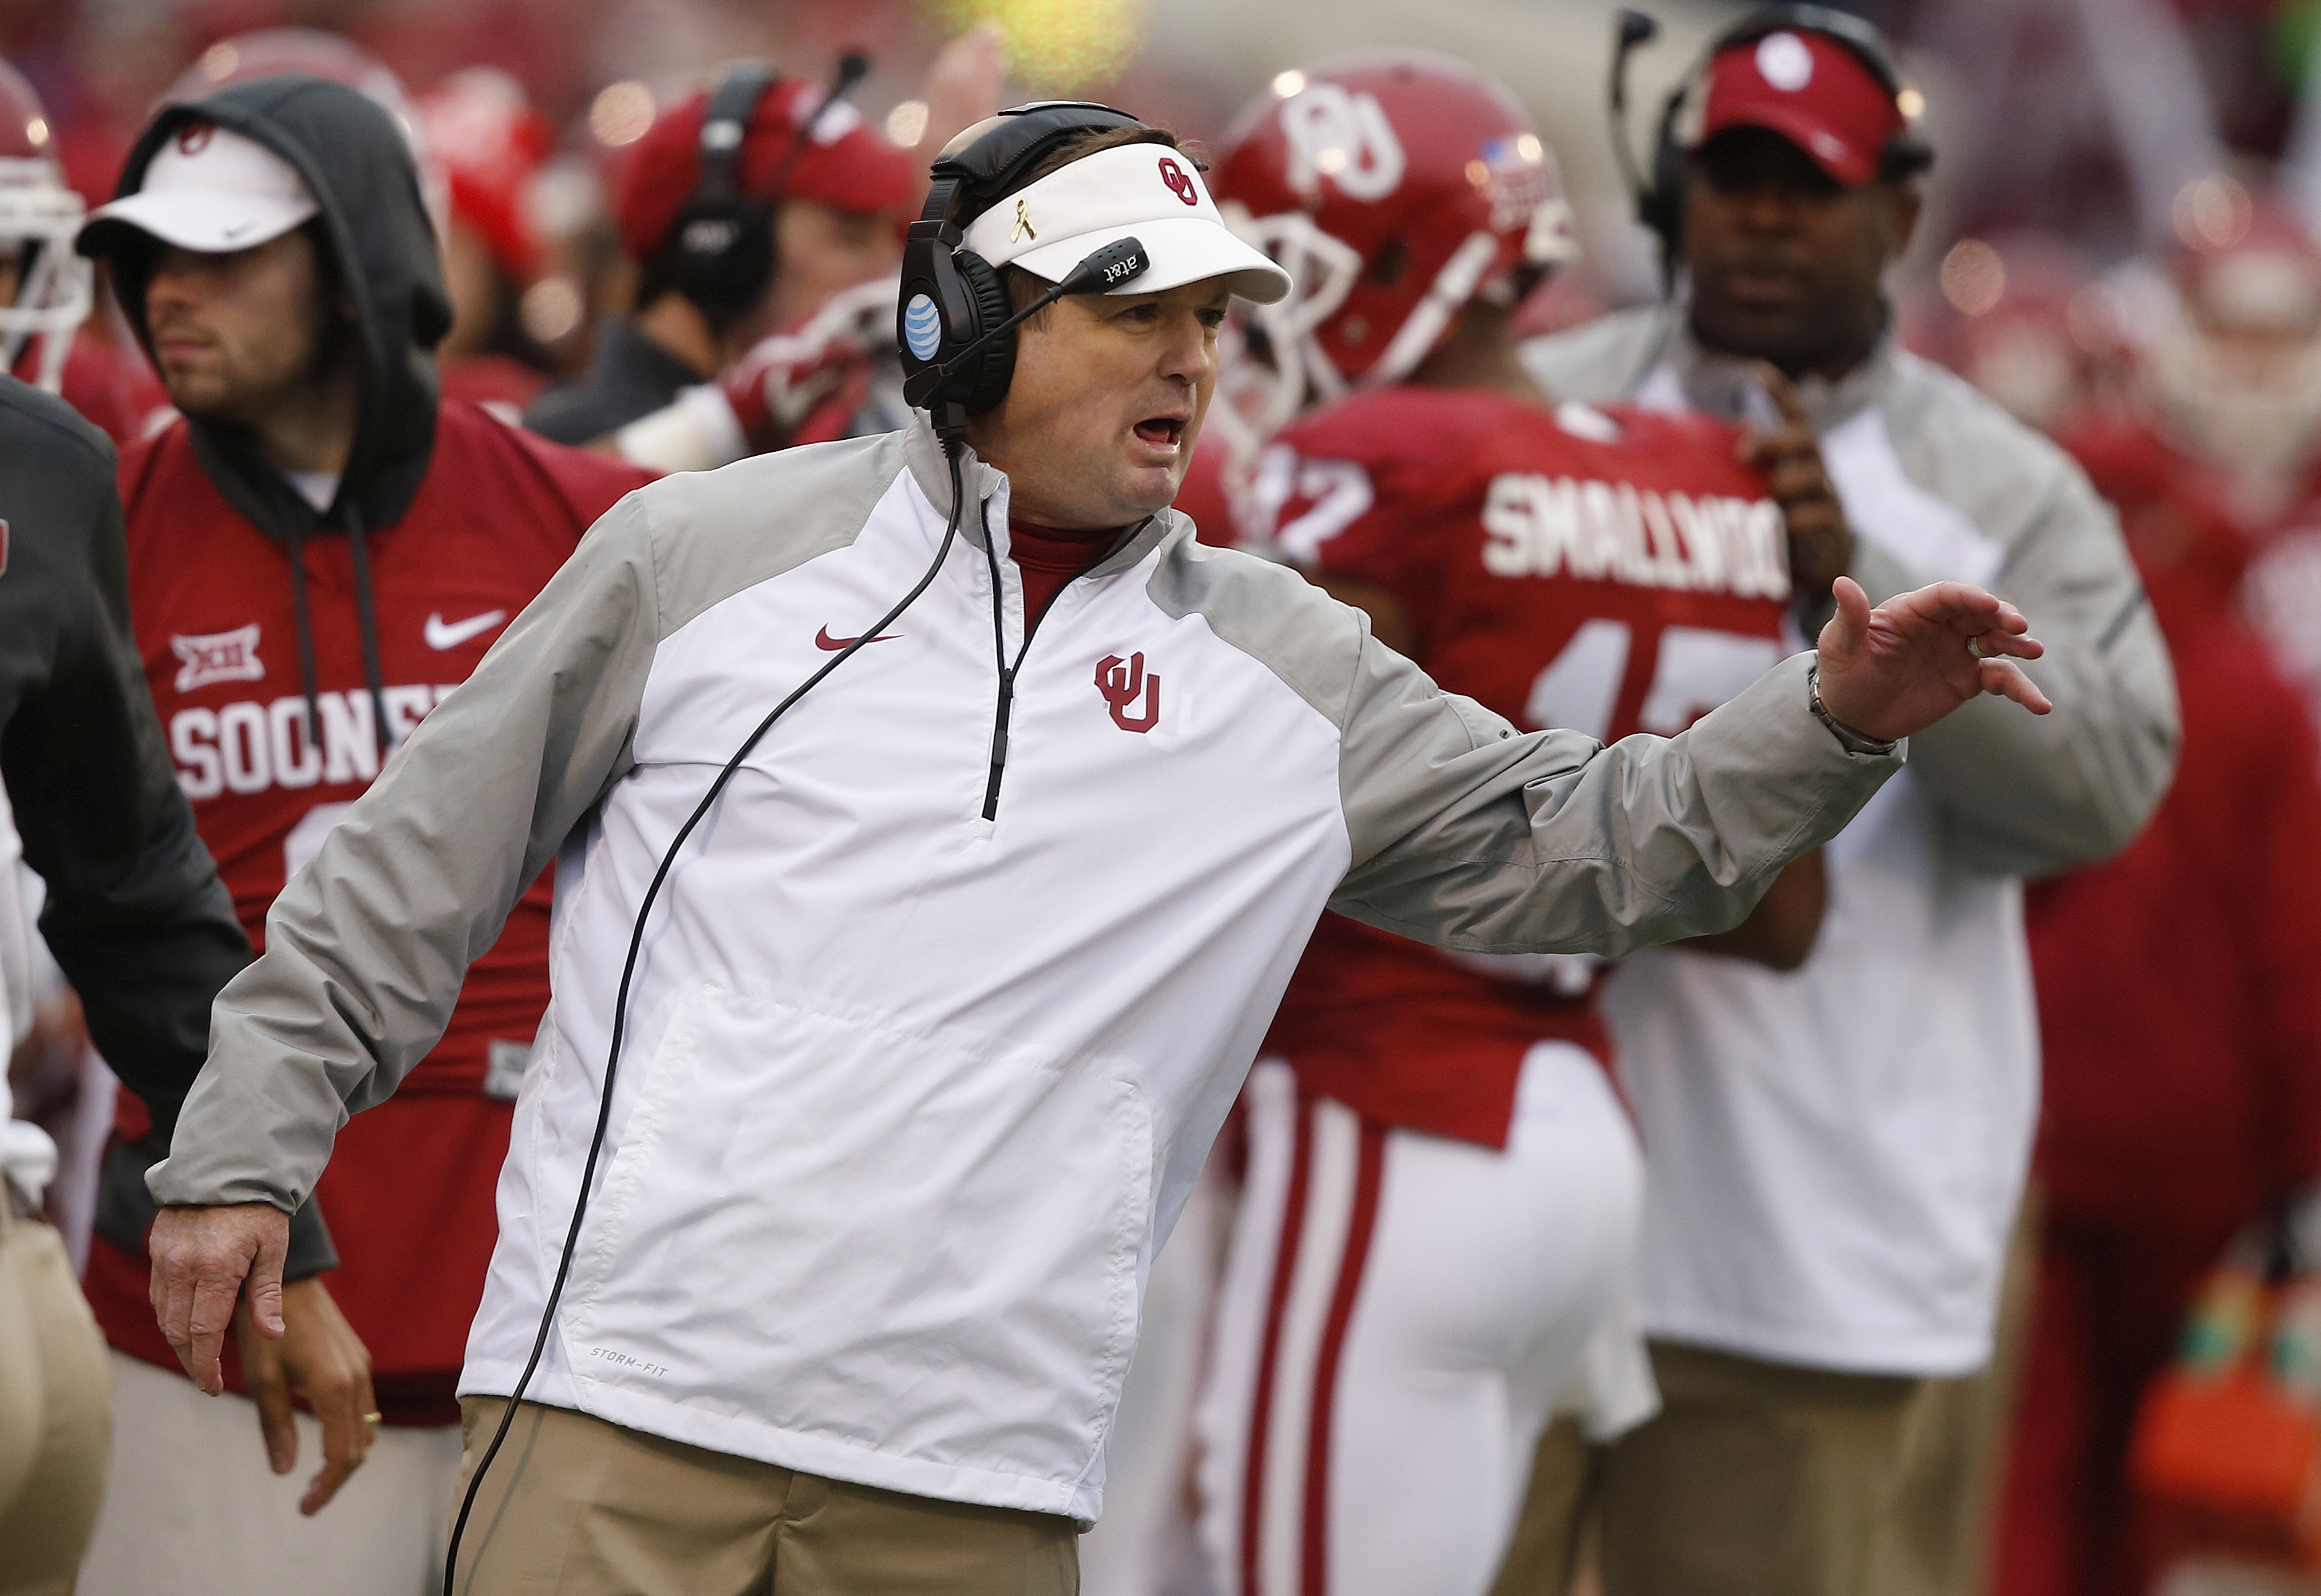 FILE - In this Dec. 6, 2014 file photo, Oklahoma head coach Bob Stoops is shown during an NCAA college football game between Oklahoma State and Oklahoma in Norman, Okla. Oklahoma already has a record nine Big 12 championships, and last season took the lea